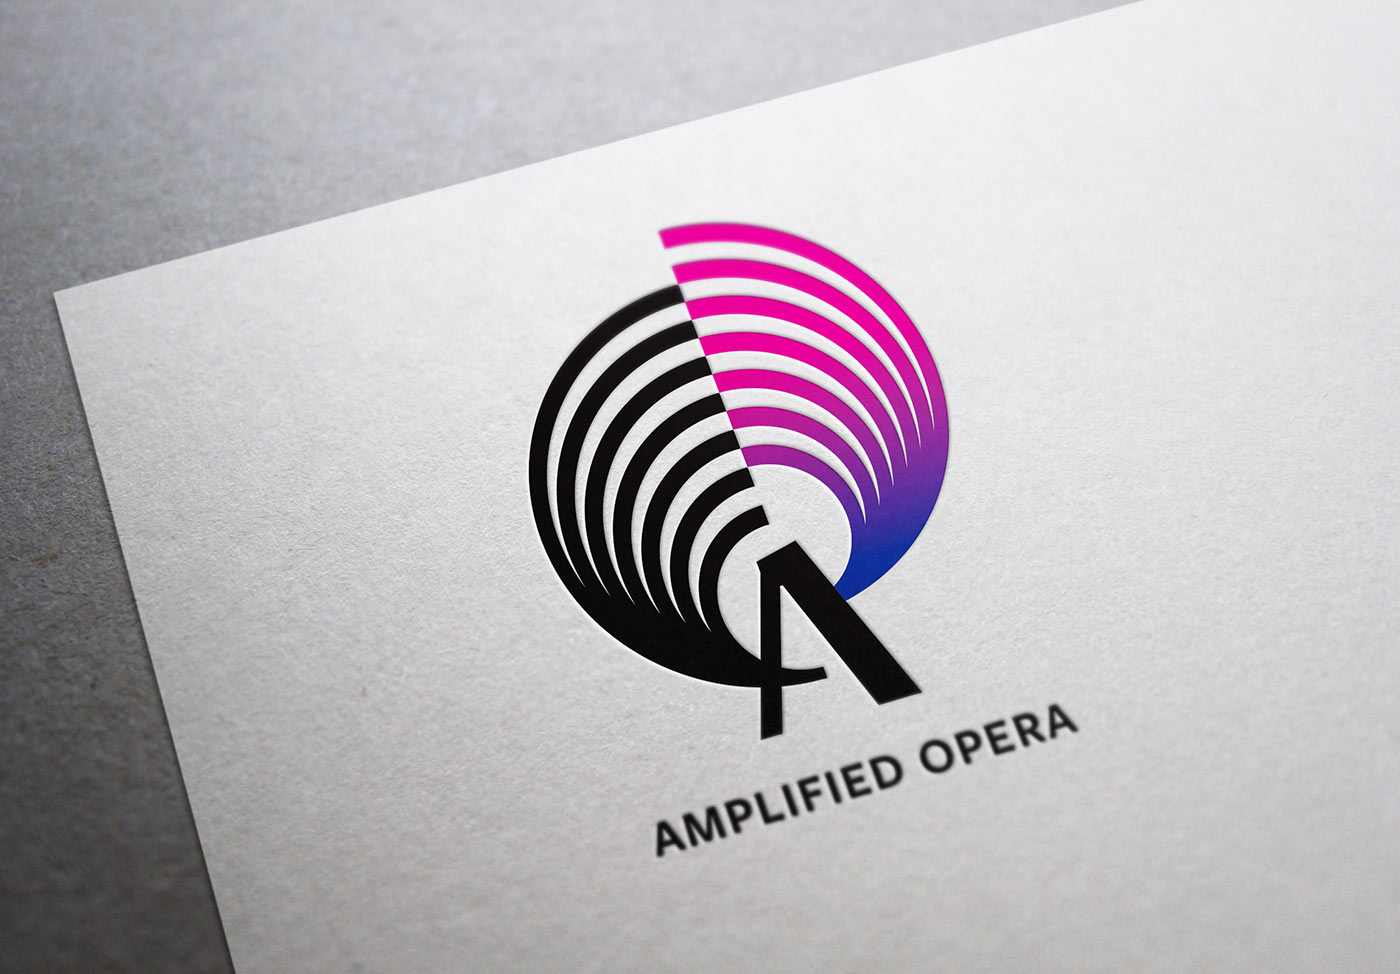 Logo for Amplified Opera printed on a sheet of white paper